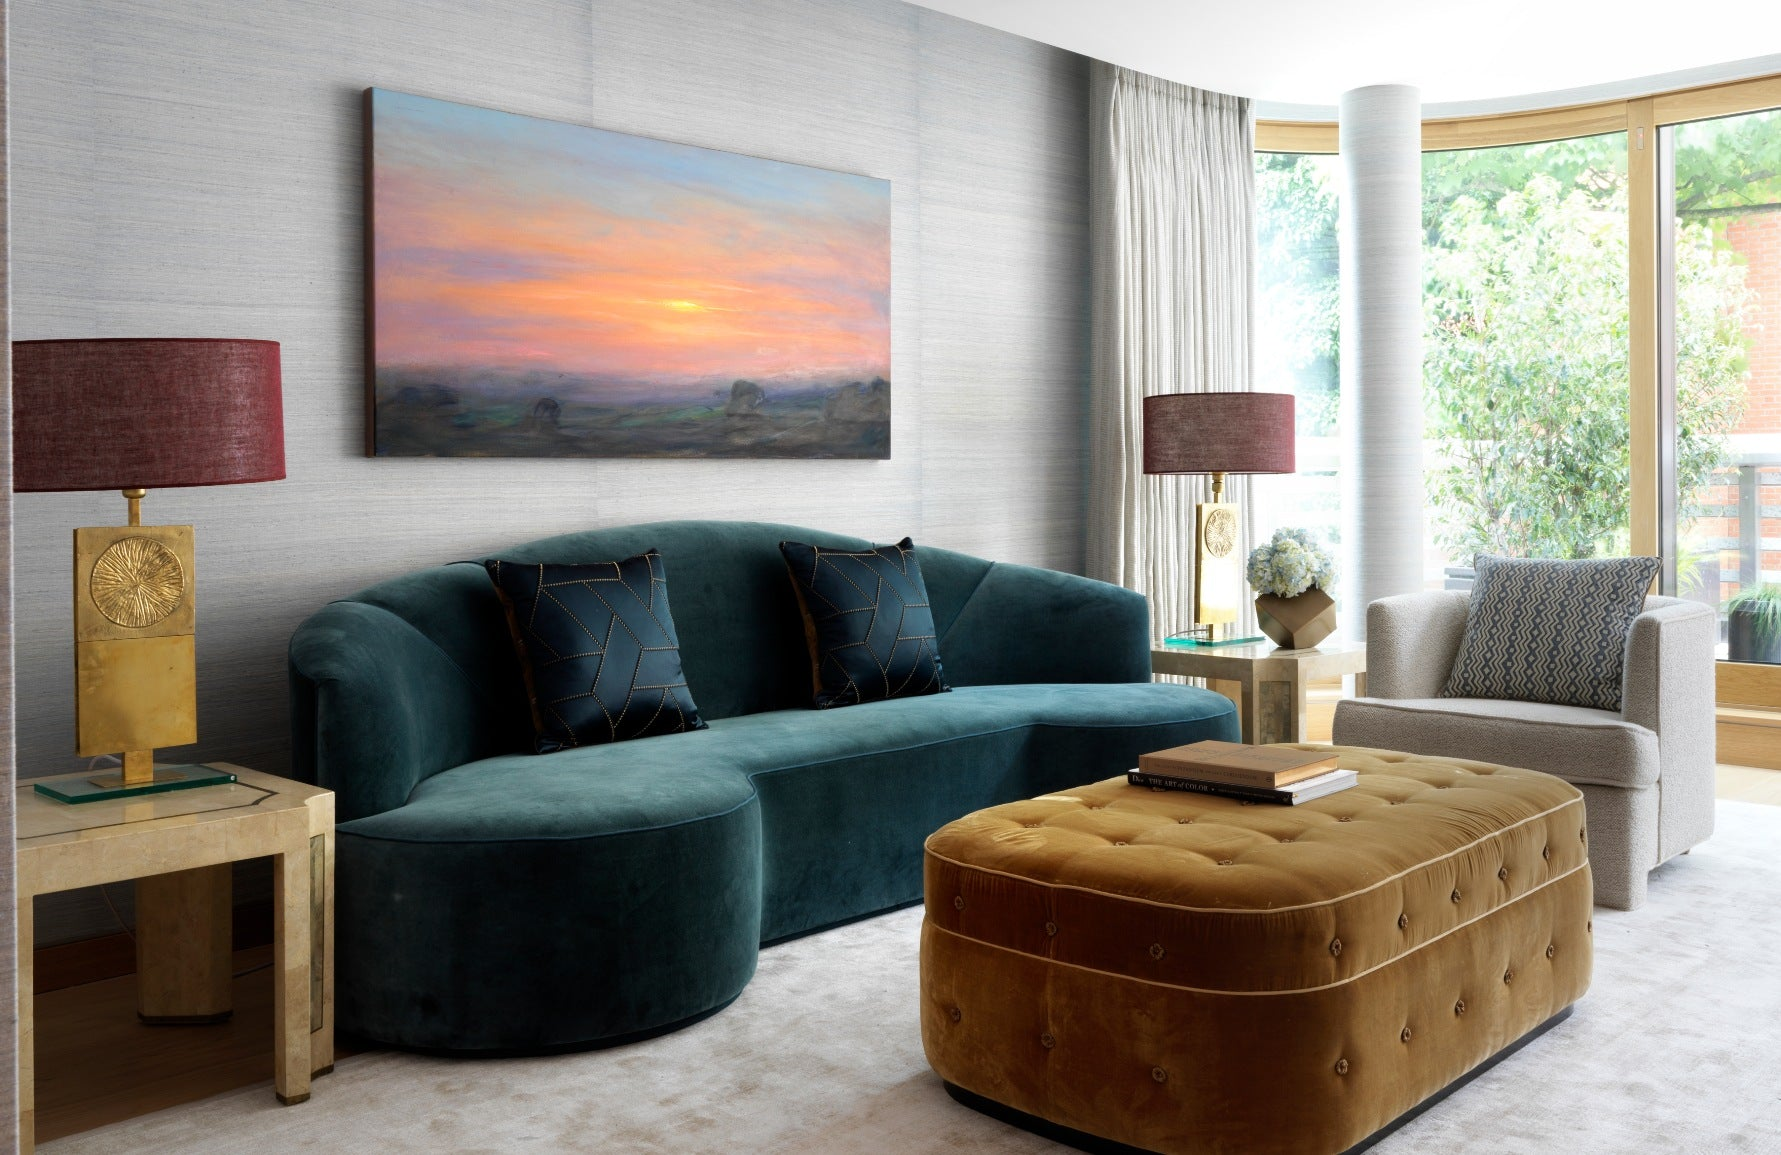 Teal Living Room Ideas How To Decorate With Teal Luxdeco